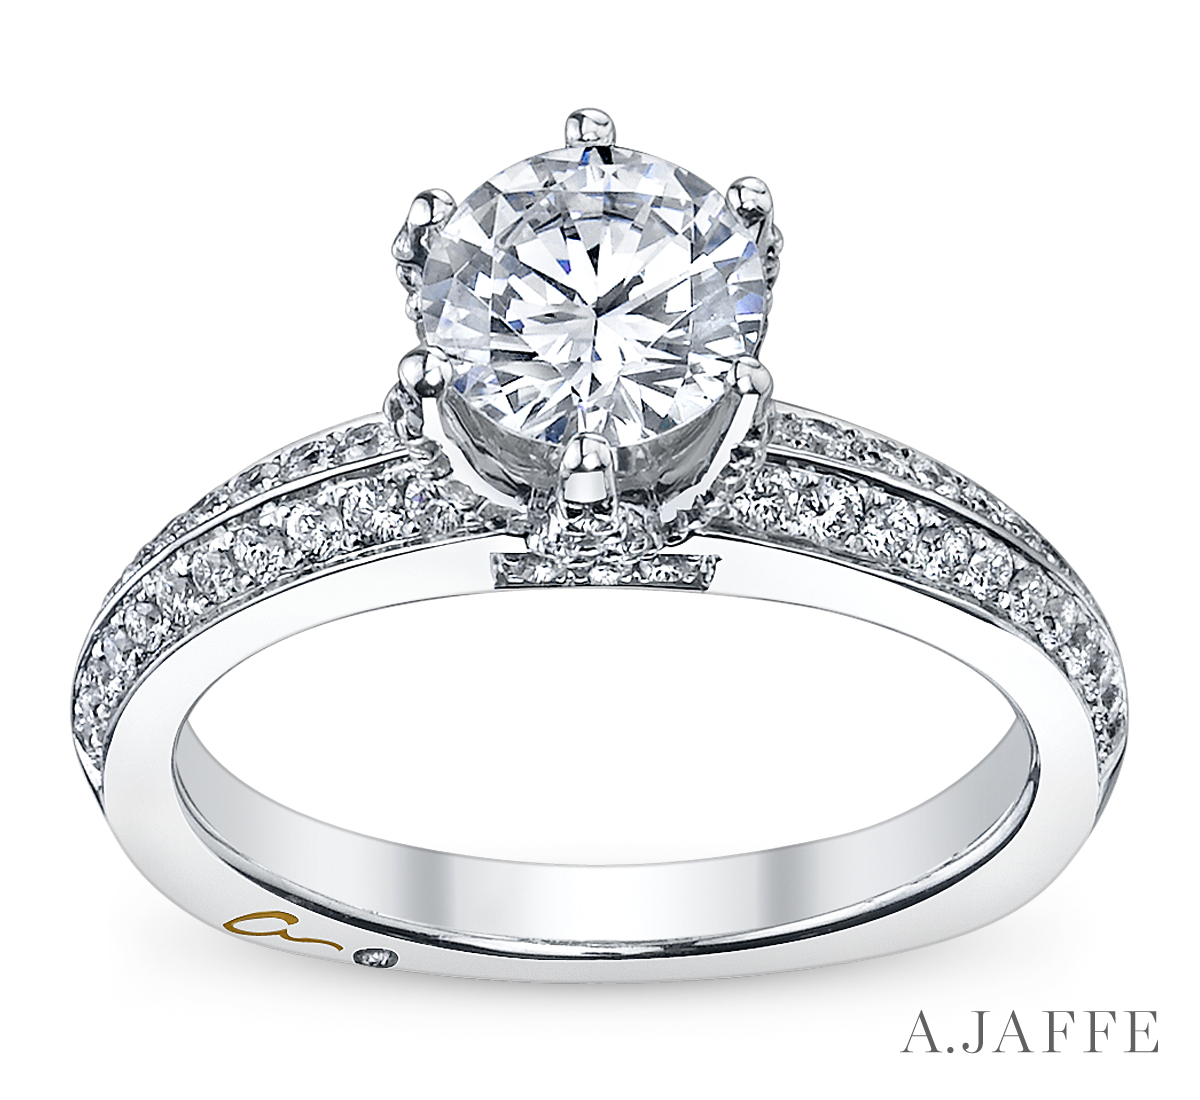 Engagement Ring of the Day–A. Jaffe